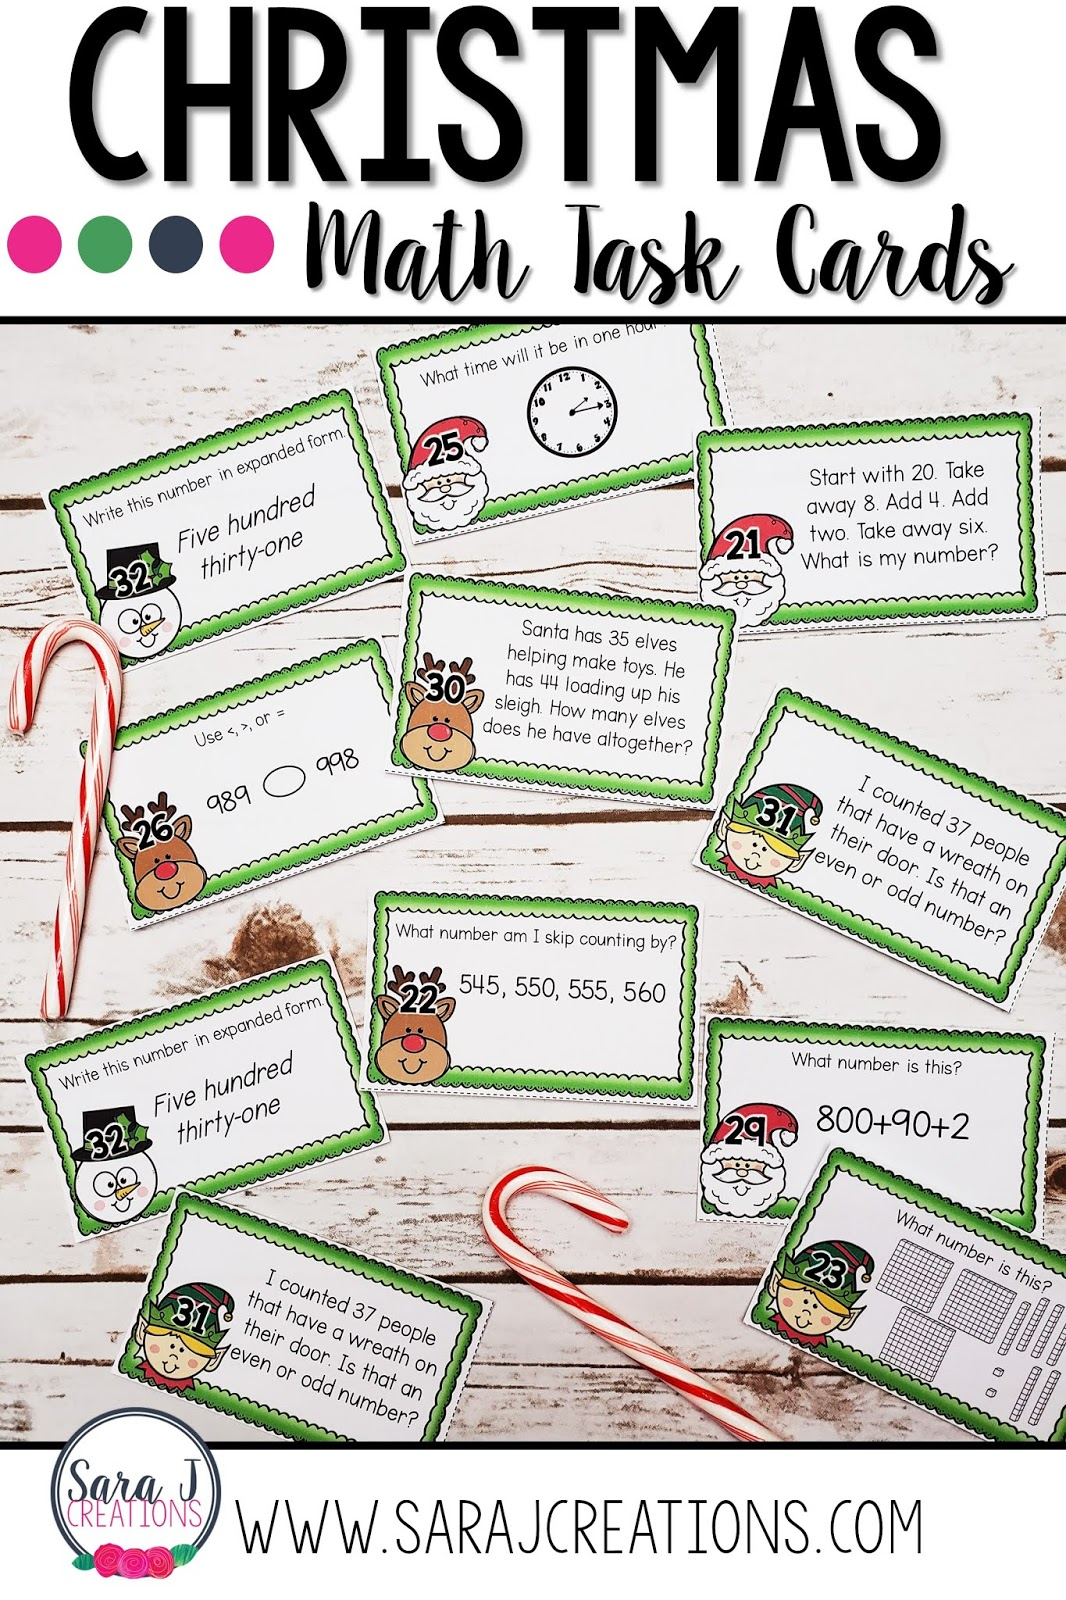 Christmas math task cards are SO fun for reviewing a variety of topics. From place value, to time and money, to addition and subtraction, to story problems all with a fun Christmas theme! Designed for second grade but could work for third grade too!